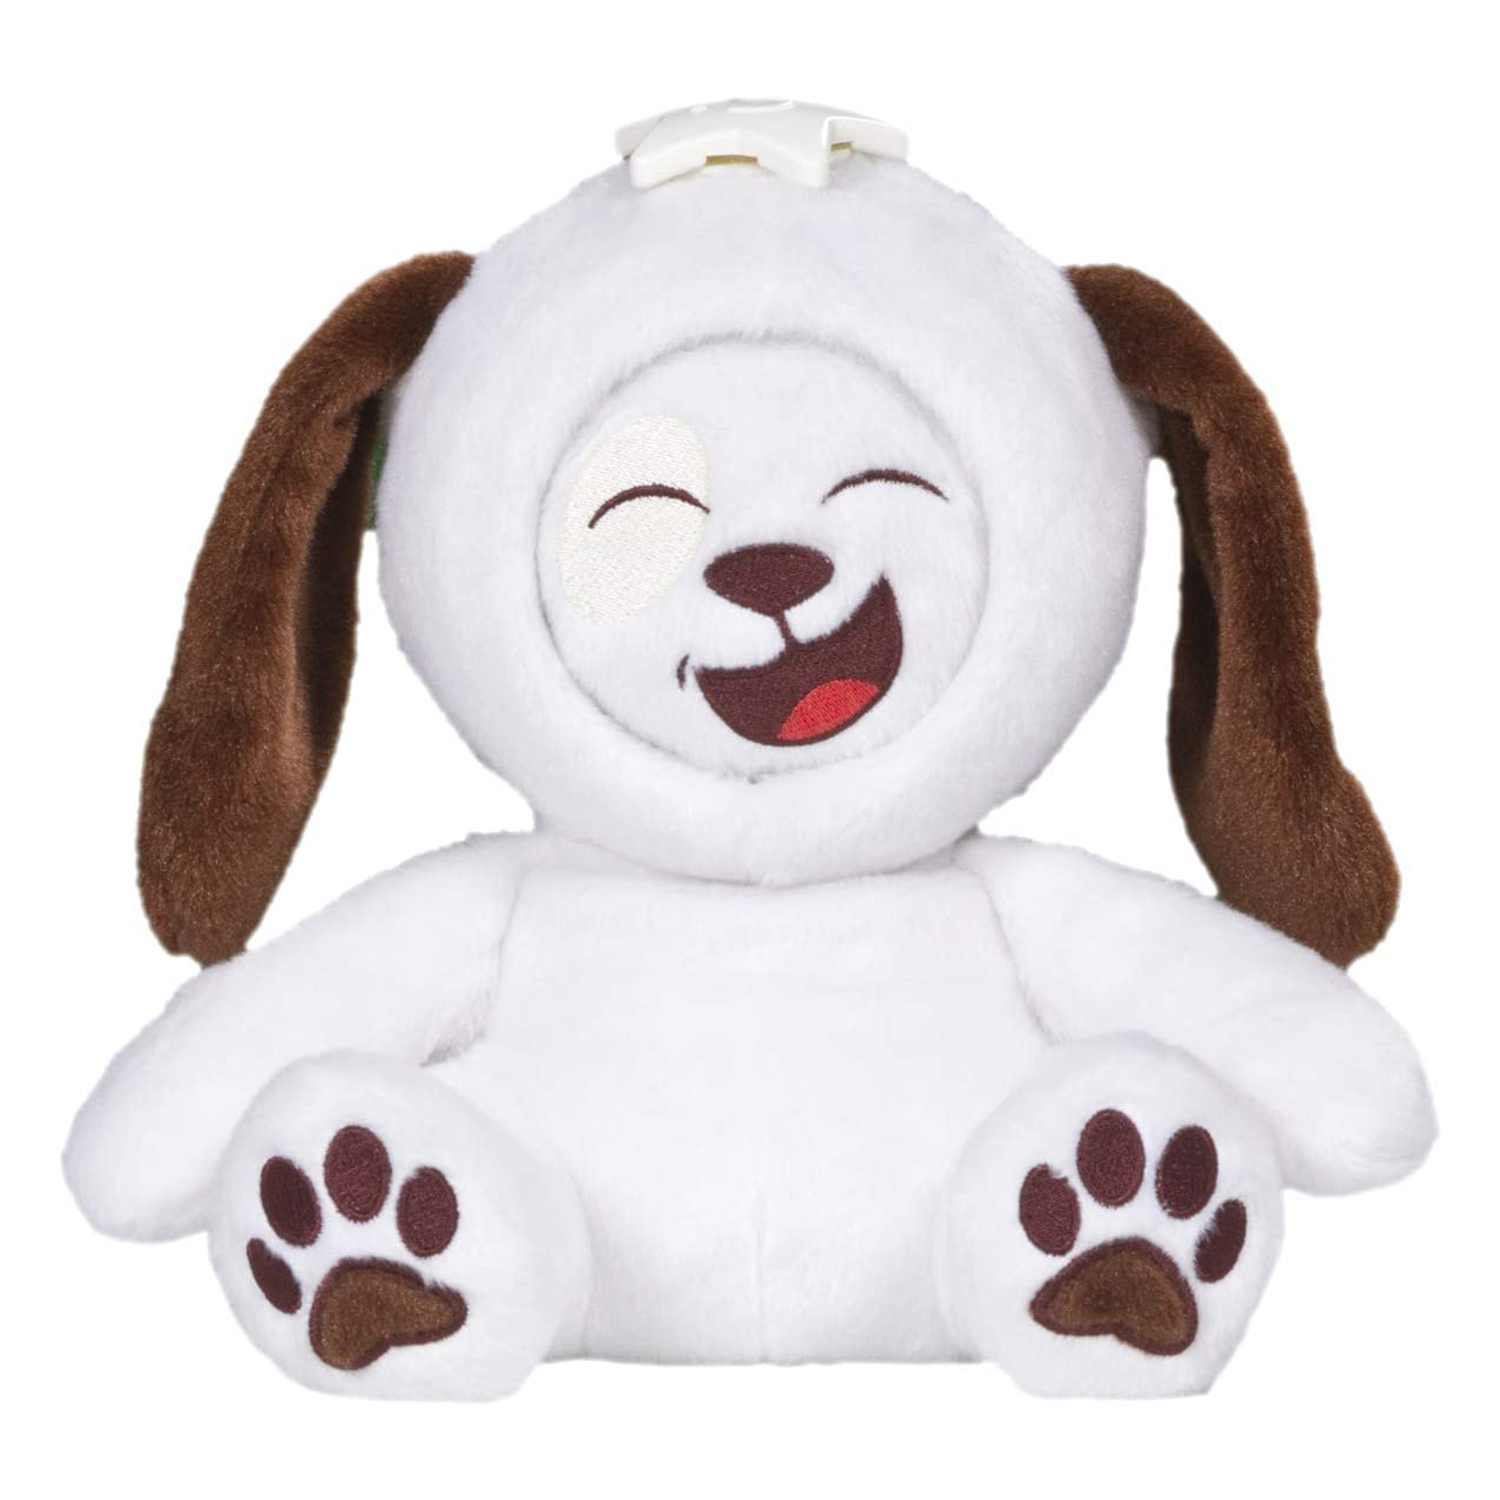 Whatsitsface Stuffed Animal with 6 Different Faces, Plush Toy